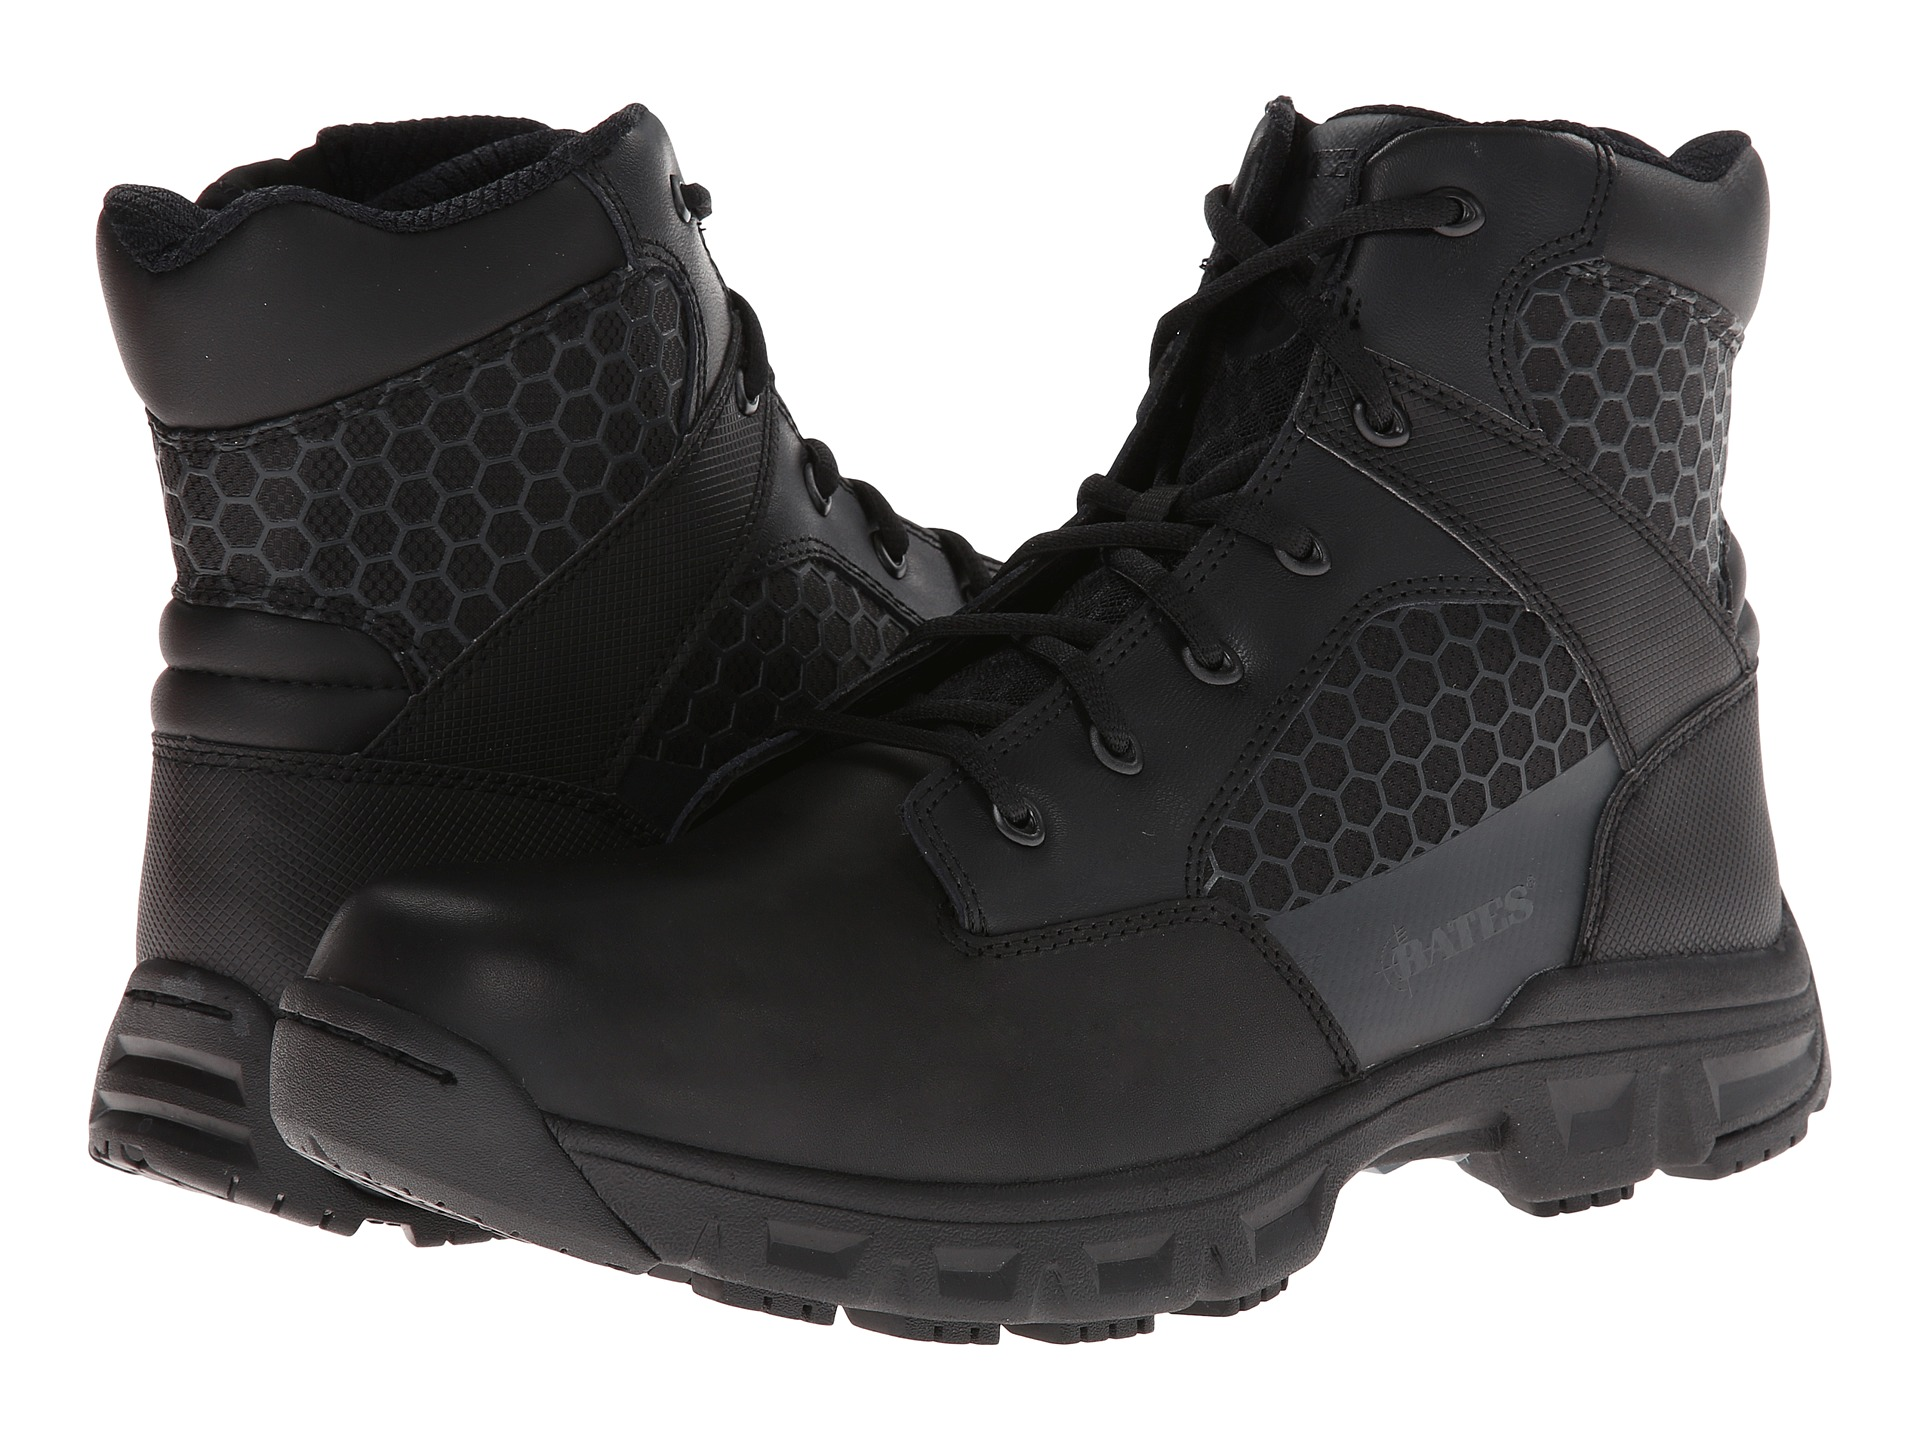 Women shoes online. Where to buy bates boots